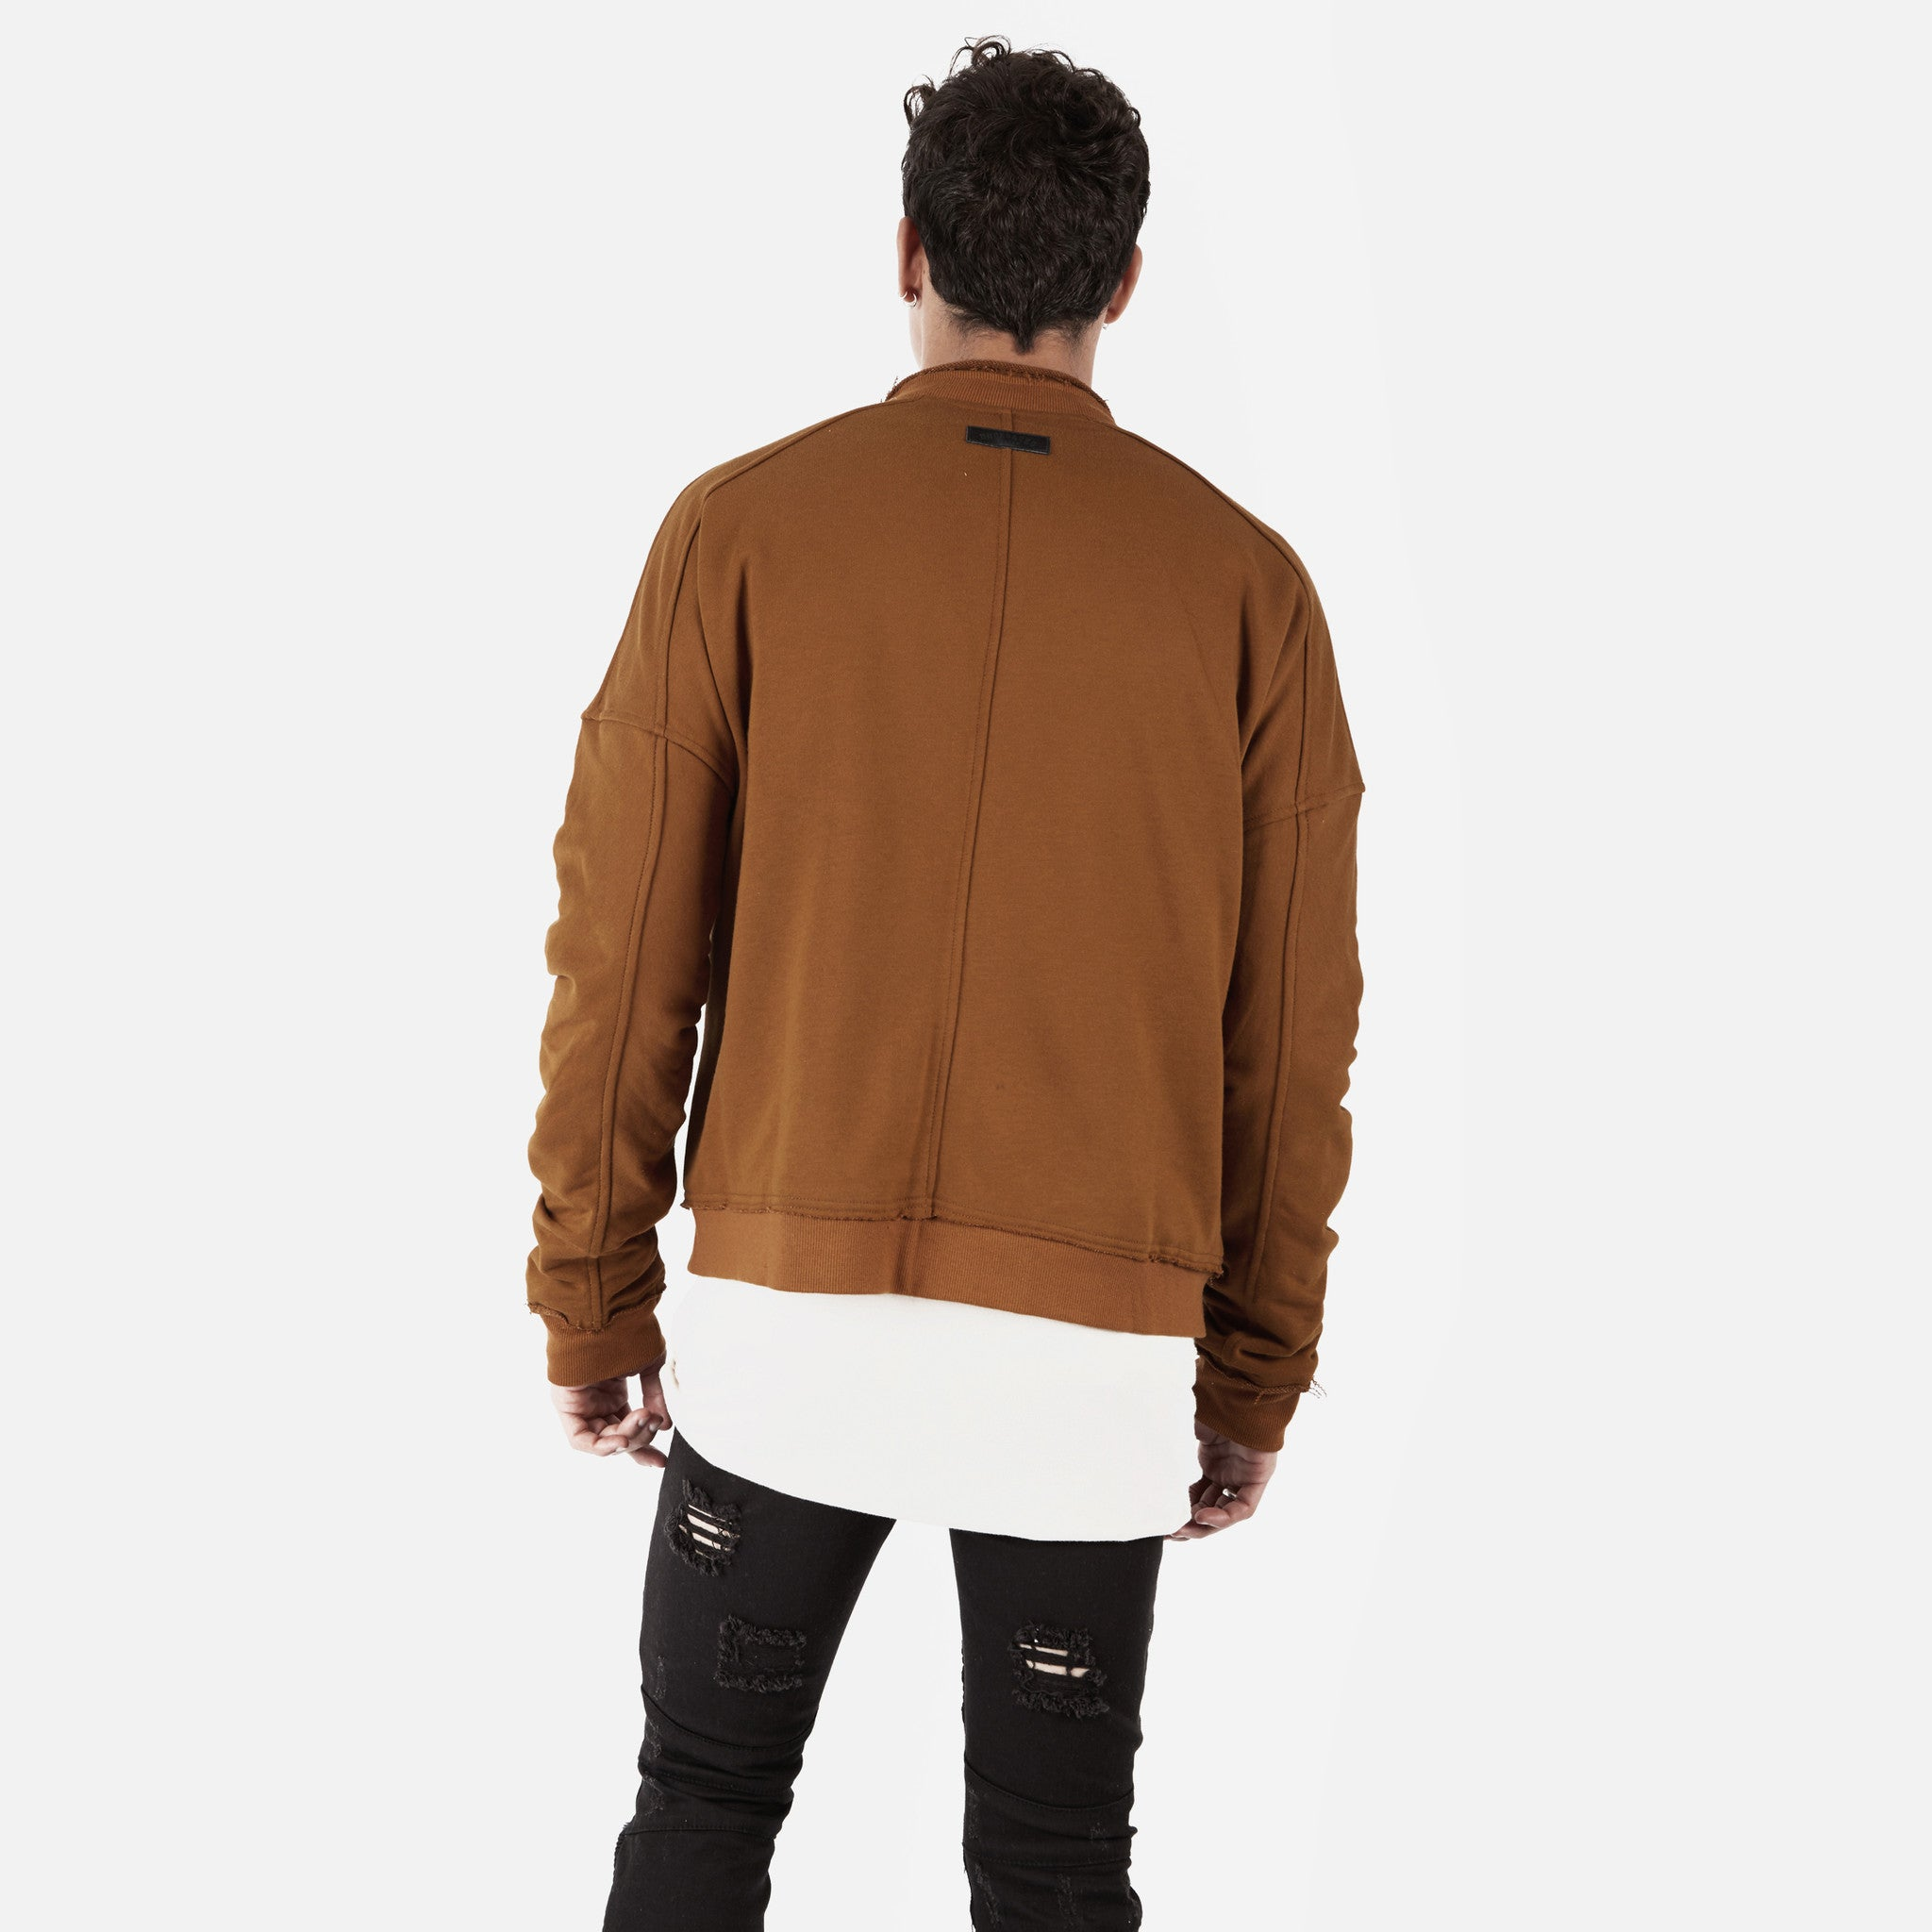 BM290 Exile Oversized Bomber Jacket - Clay - underated london - underatedco - 7